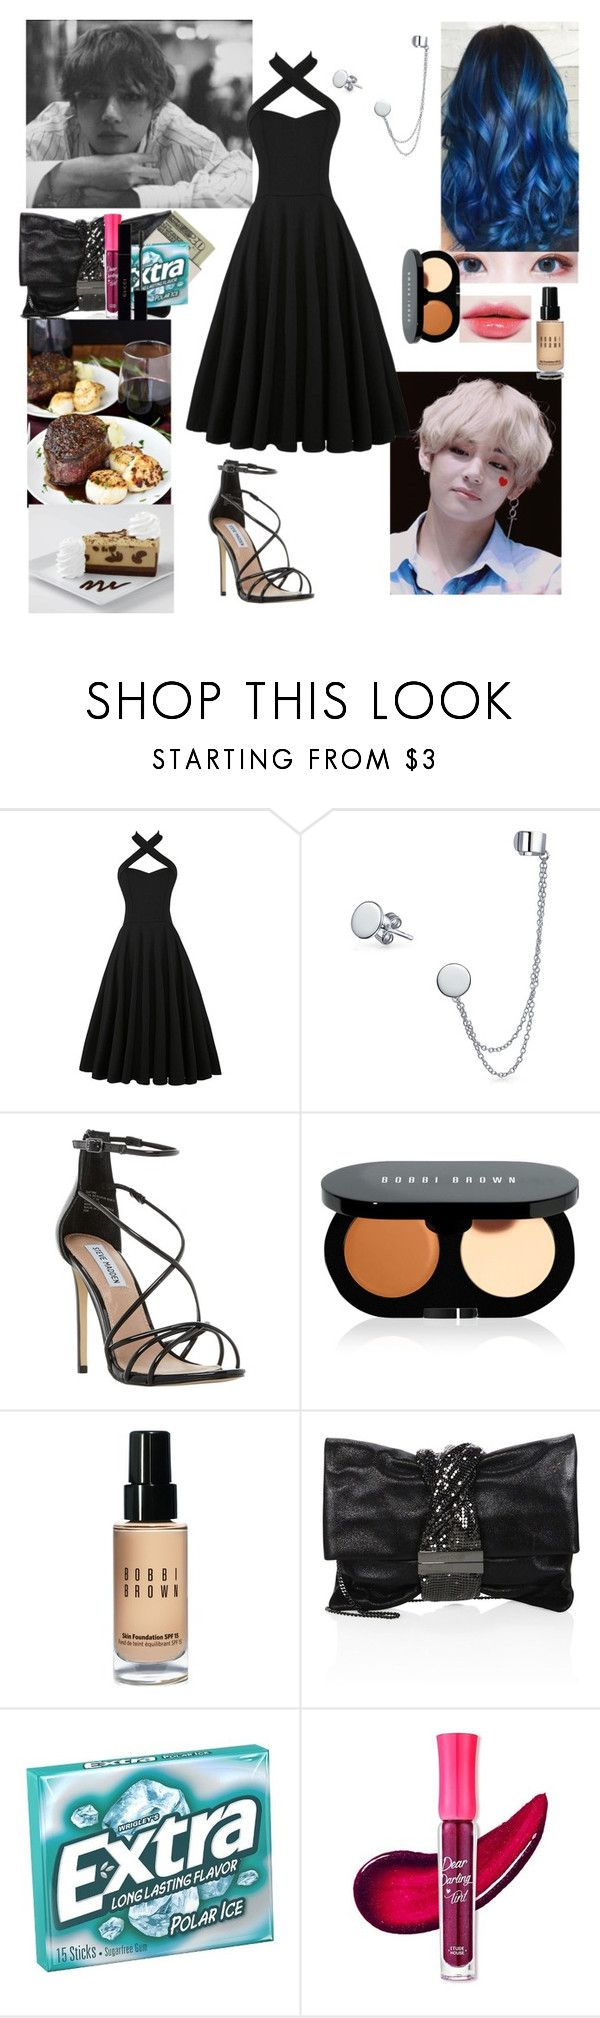 """Dinner date with Taehyung"" by mimiisabooknerd ❤ liked on Polyvore featuring Misa, Bling Jewelry, Steve Madden, Bobbi Brown Cosmetics, Jimmy Choo, Jack Spade, Etude House and Gucci"